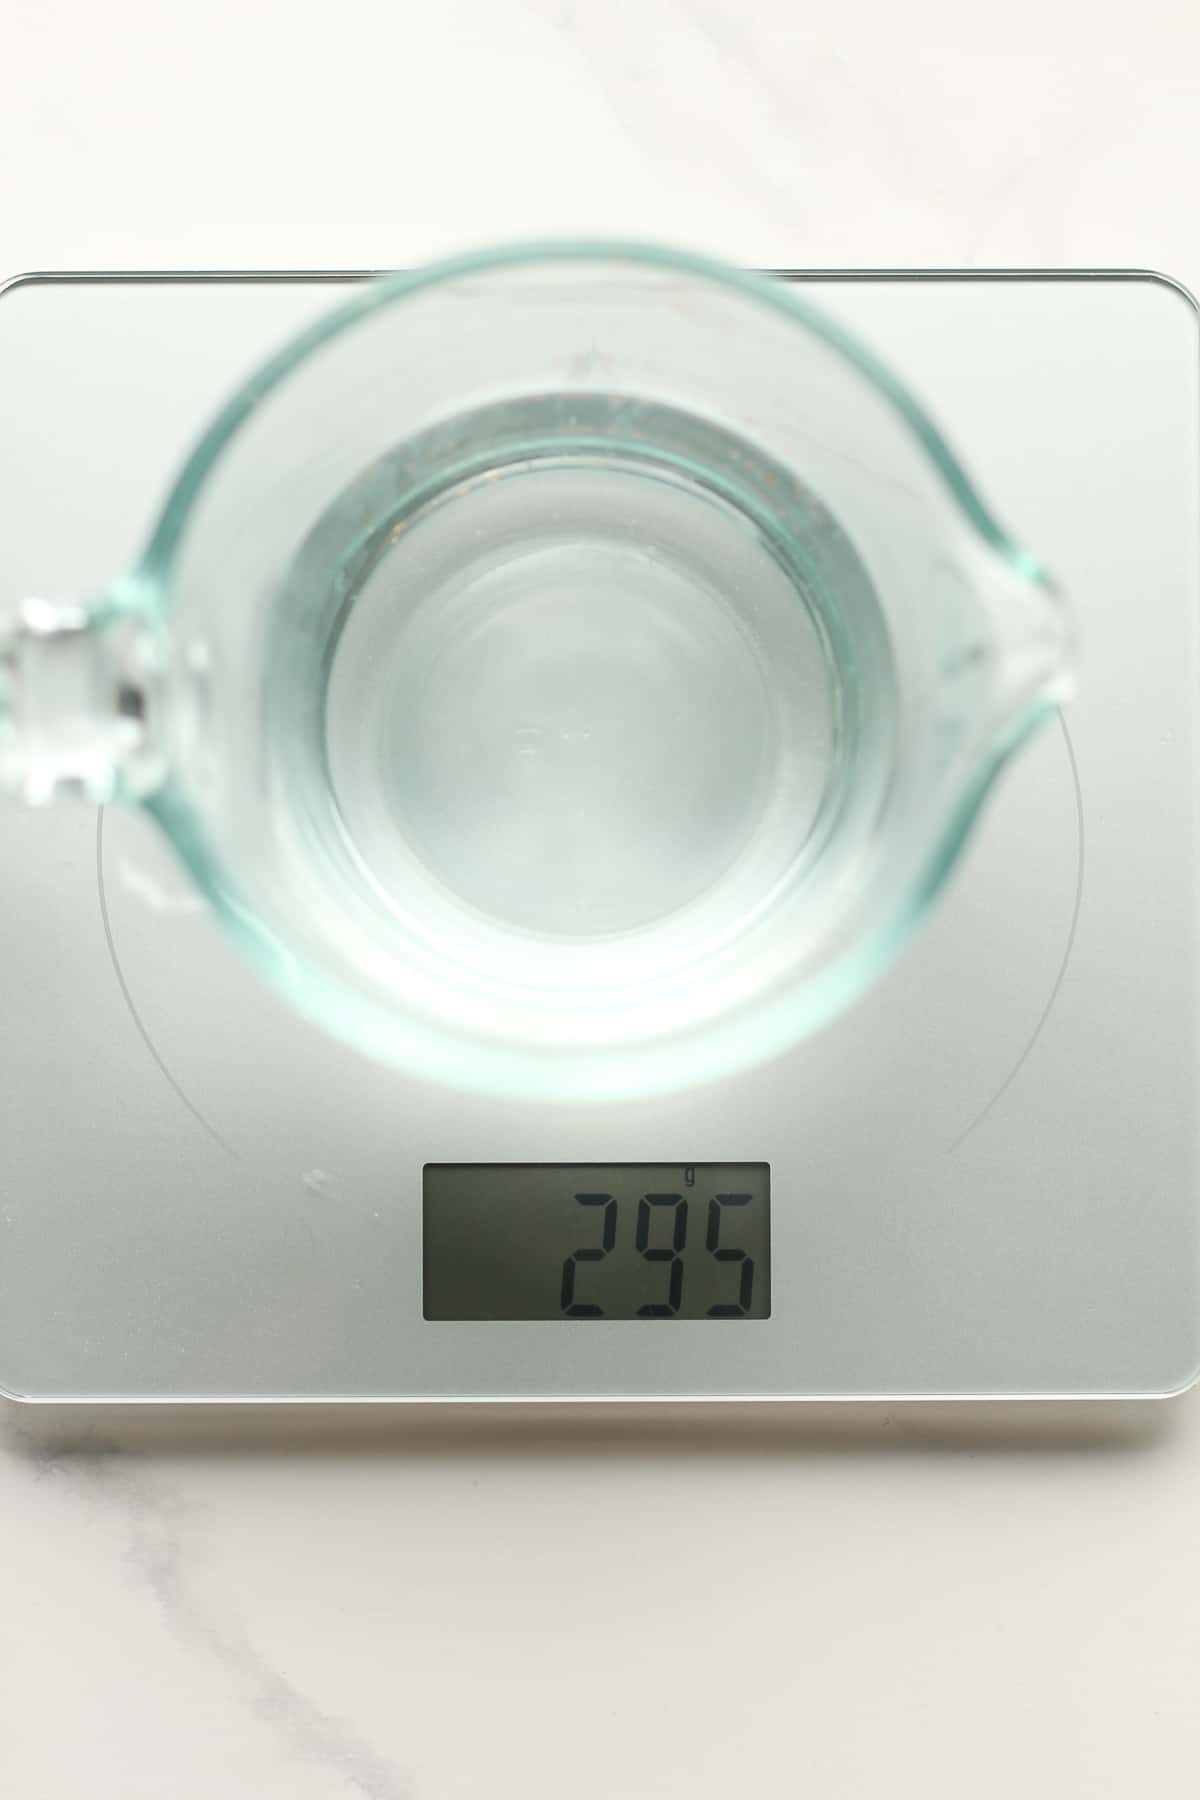 Filtered water in a measuring cup on a scale.